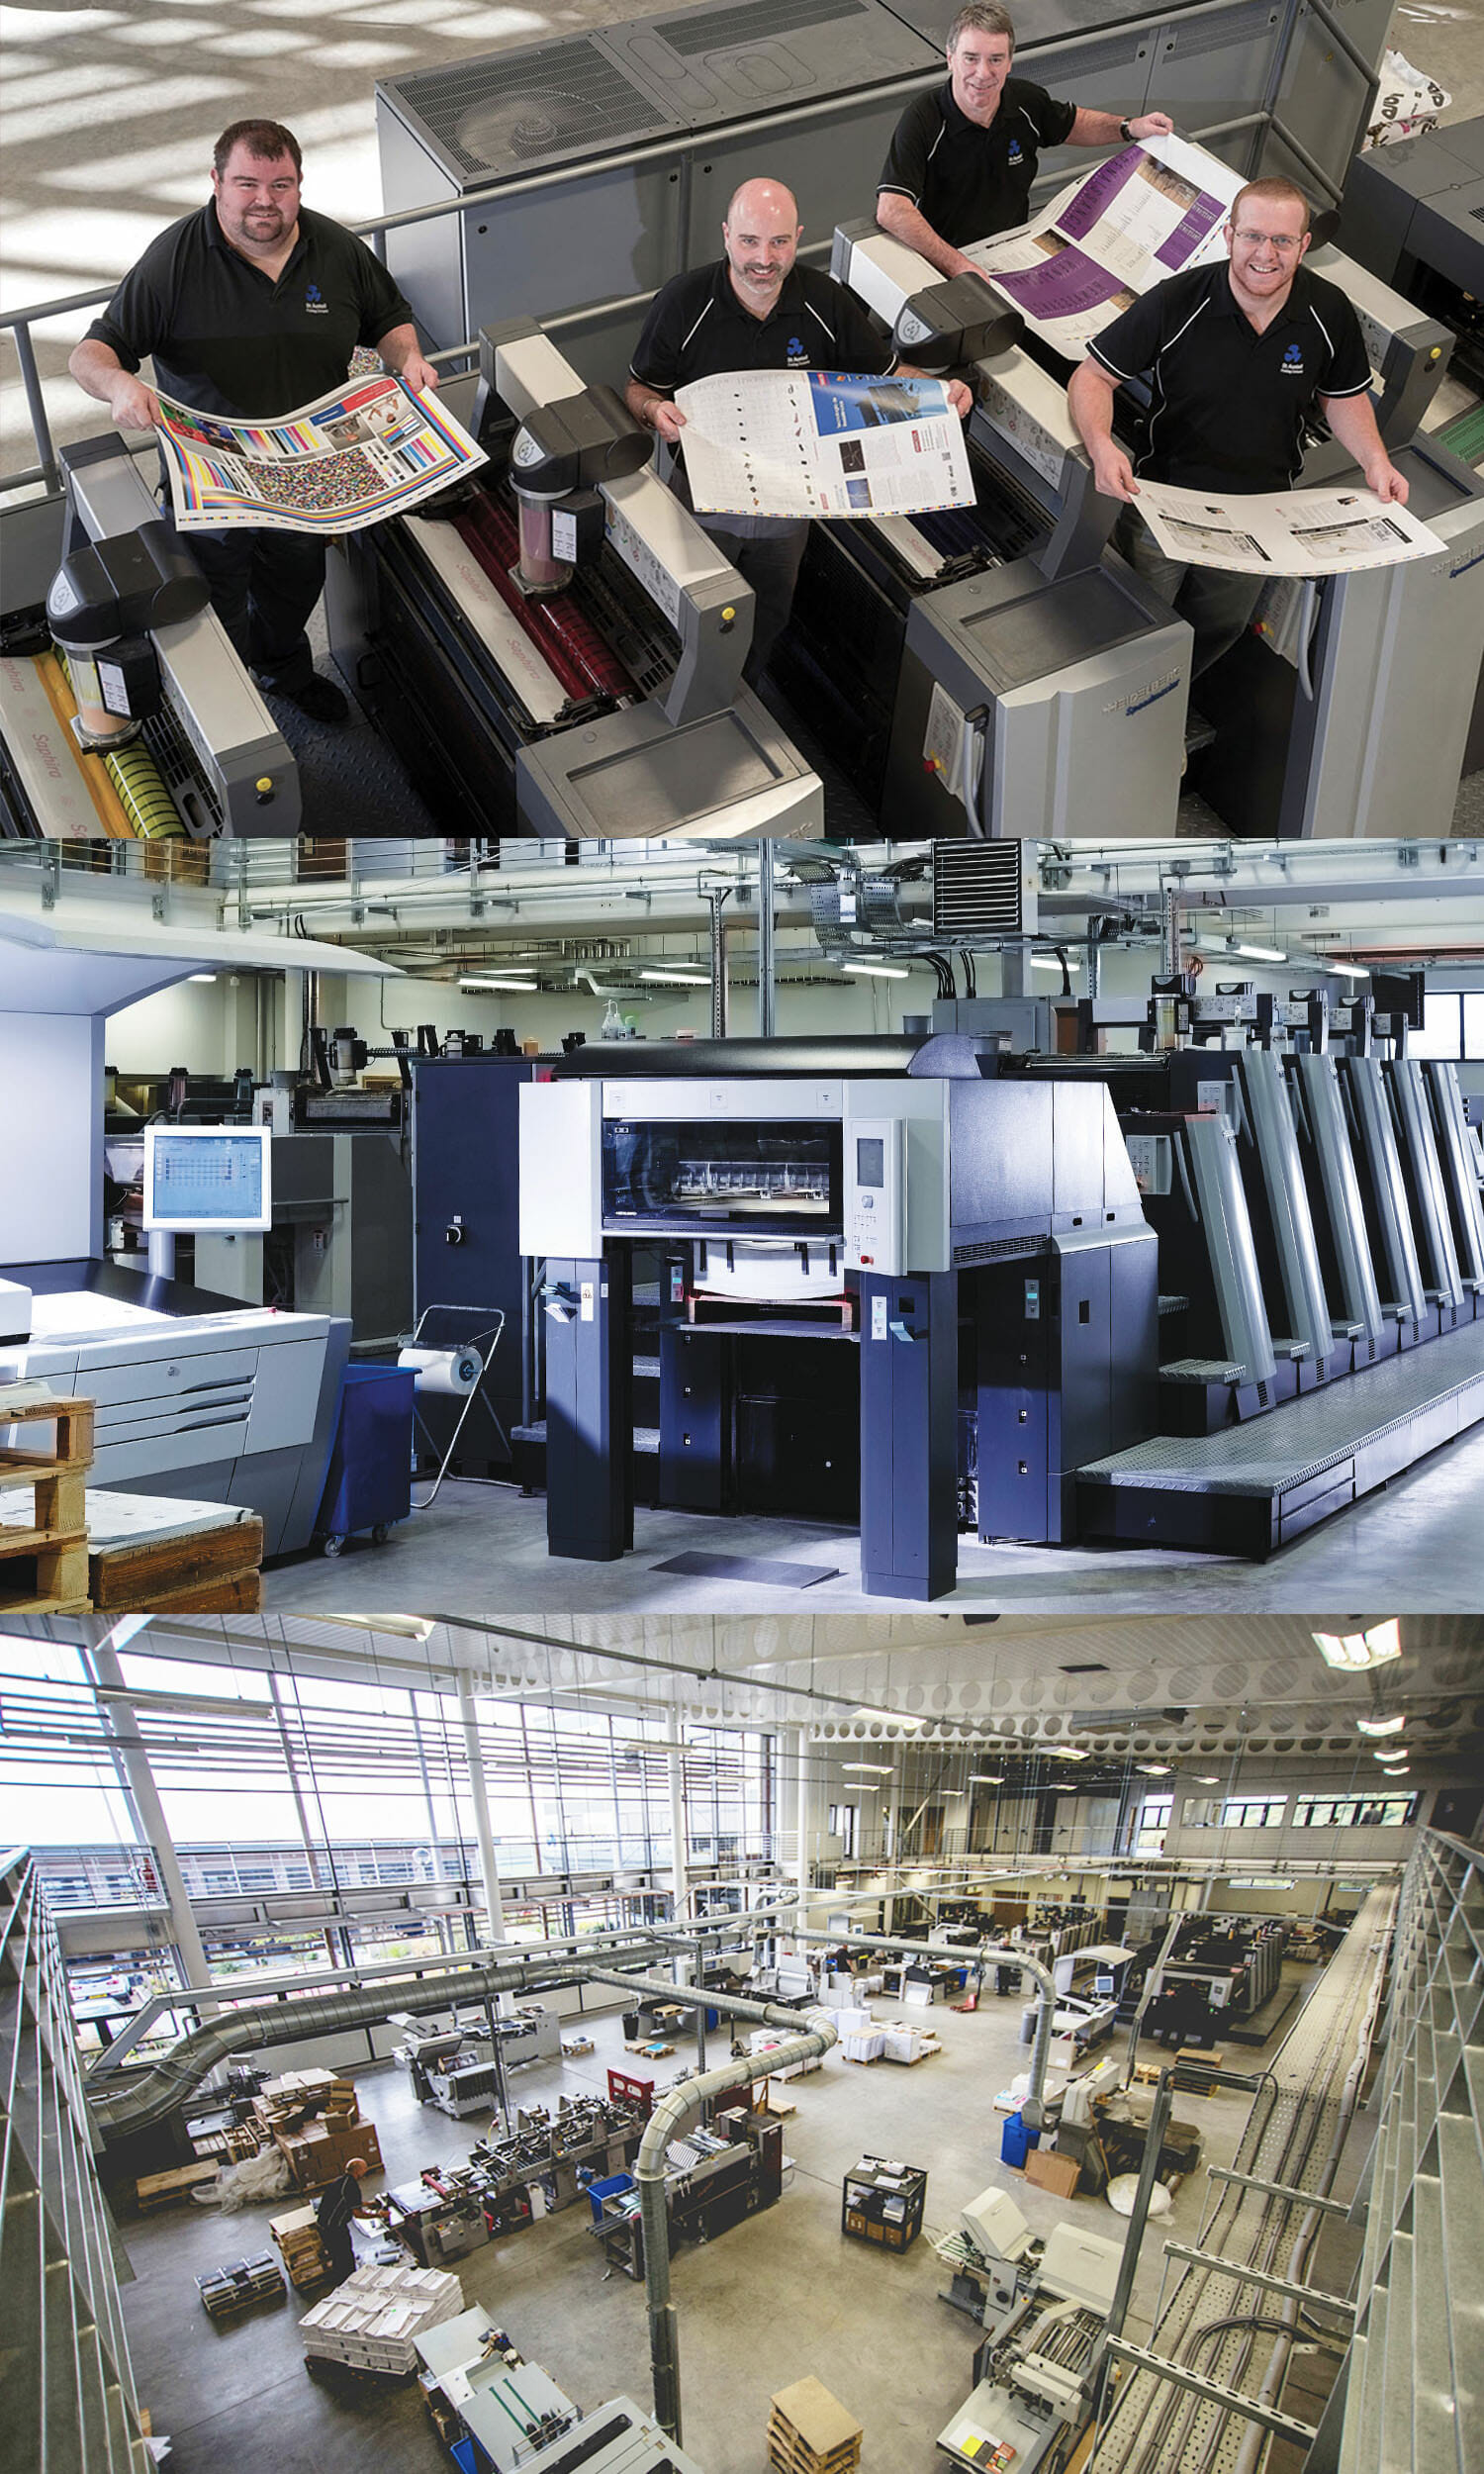 Litho Printing Services at SAPC